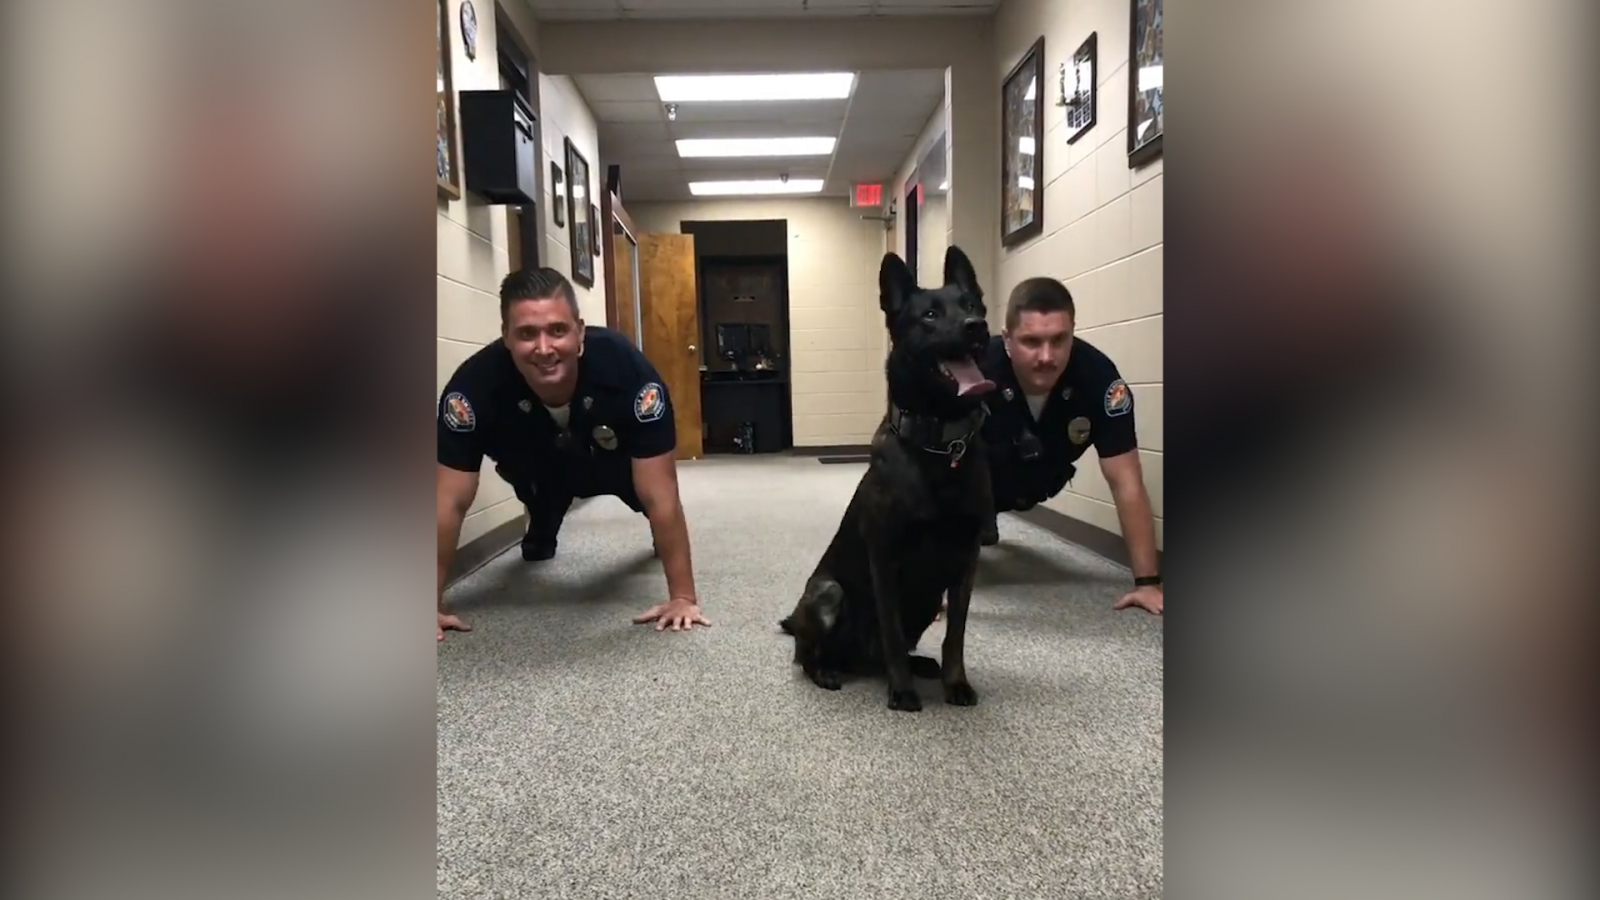 adorable-police-dog-does-push-ups-with-officers-as-eye-of-the-tiger-plays